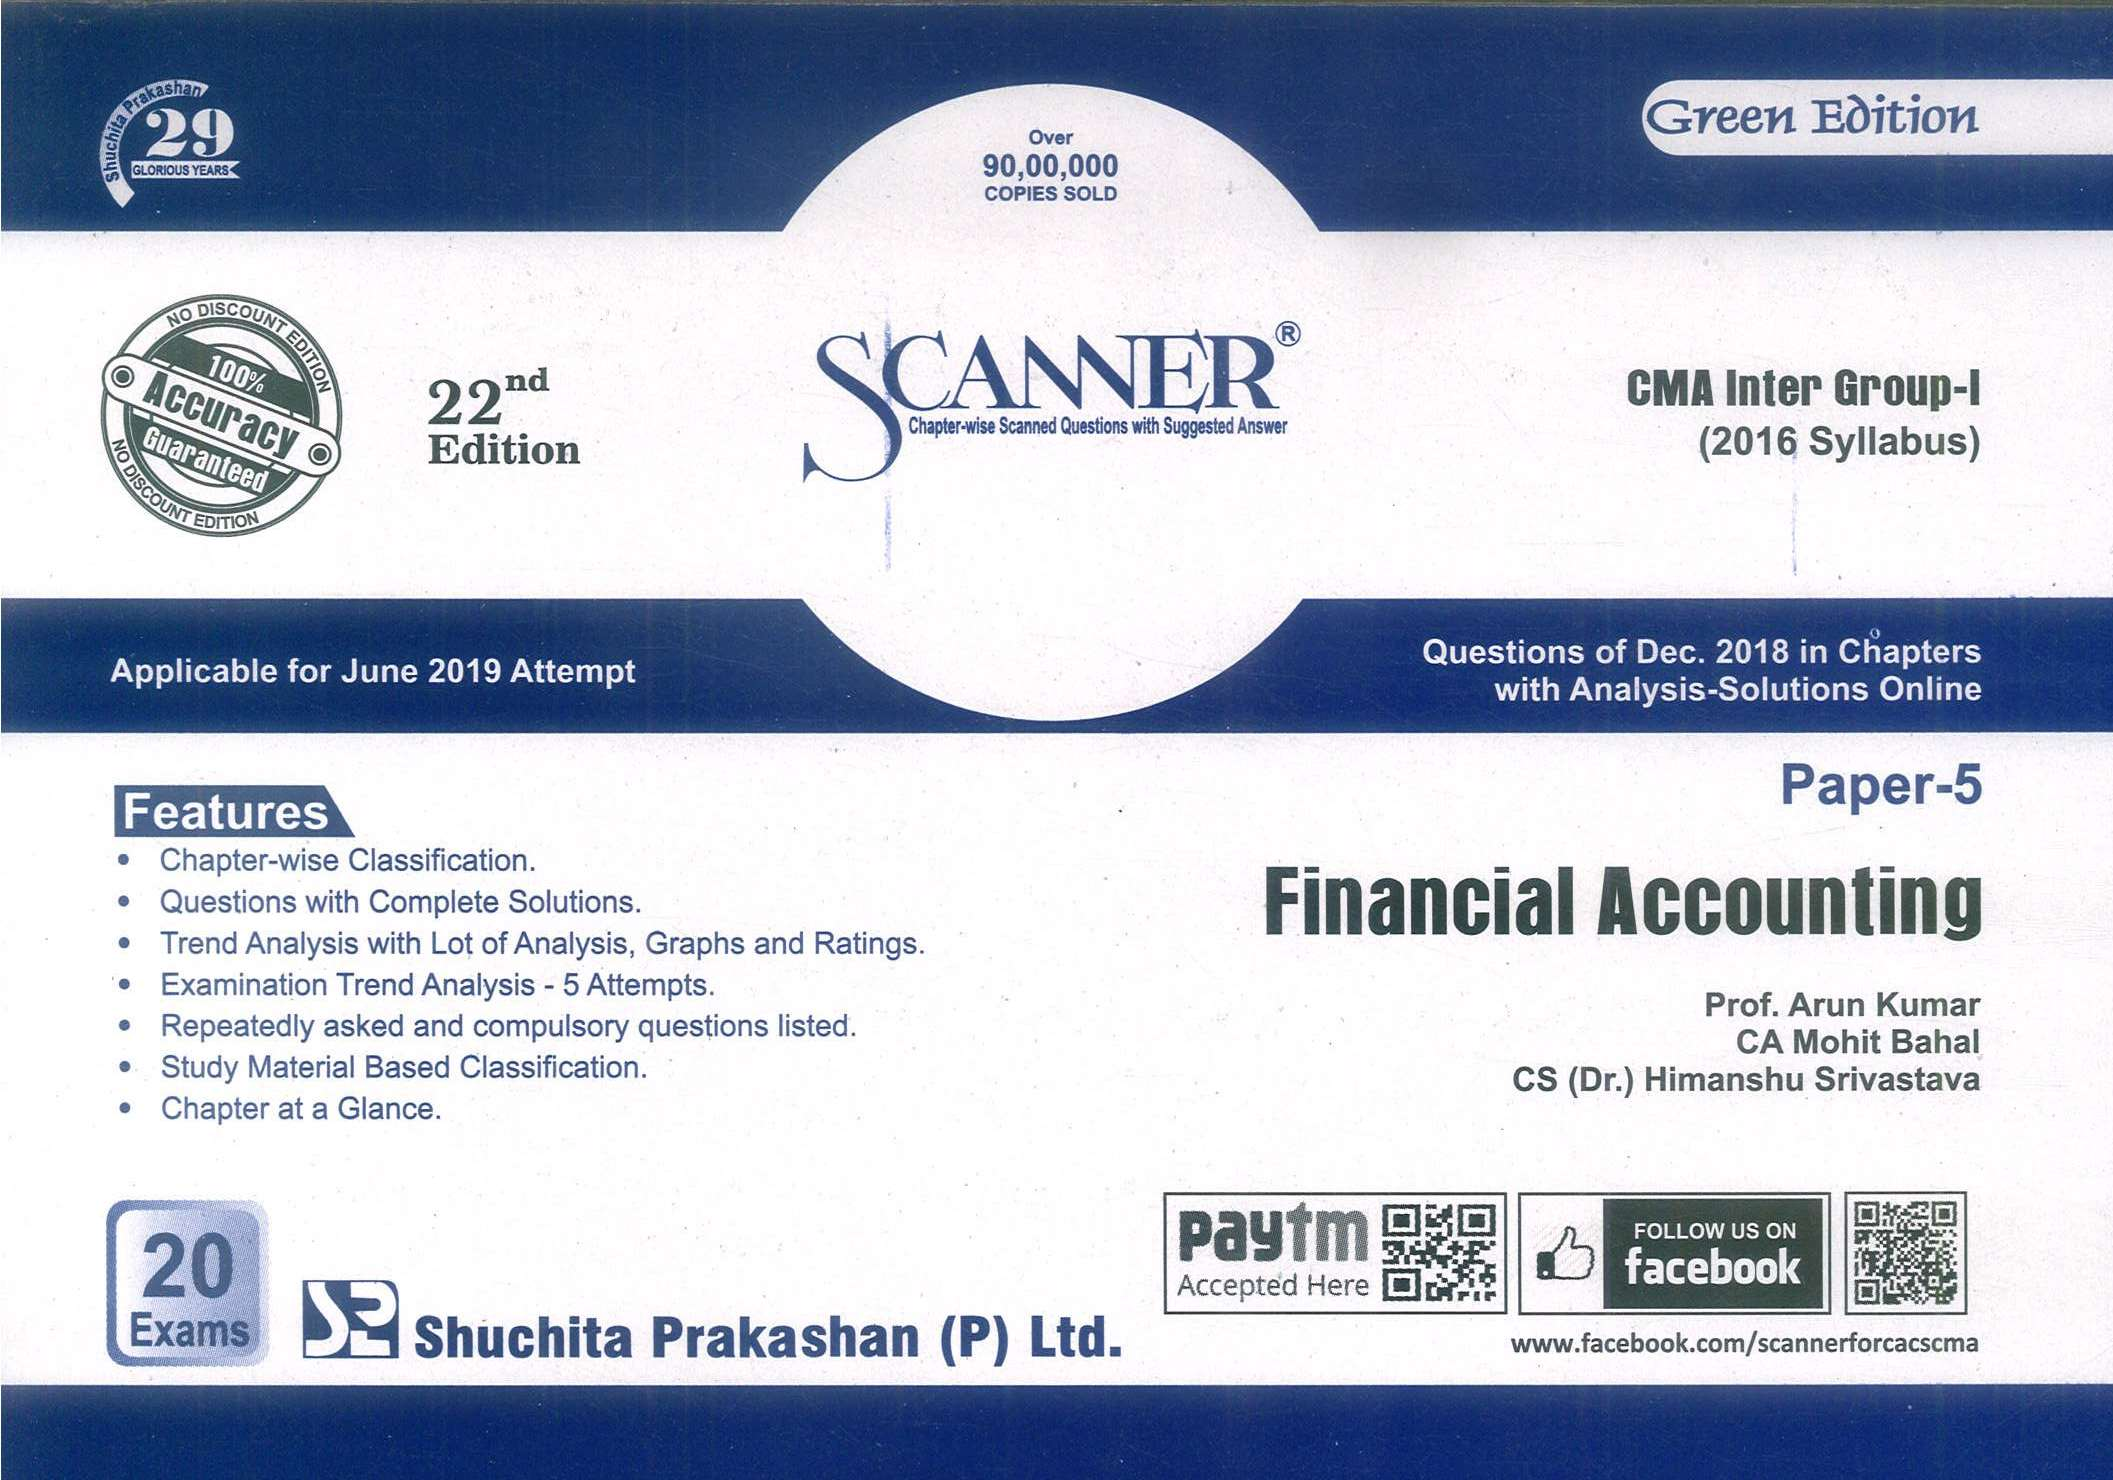 Shuchita Solved Scanner CMA Inter Group-I (2016 Syllabus) Paper-5 Financial Accounting By Prof. Arun Kumar,CA. Raj K Agarwal, CA Mohit Bahal and CS (Dr.) Himanshu Srivastava Applicable for June 2019 Exam (Shuchita Prakashan) 22th Edition 2019